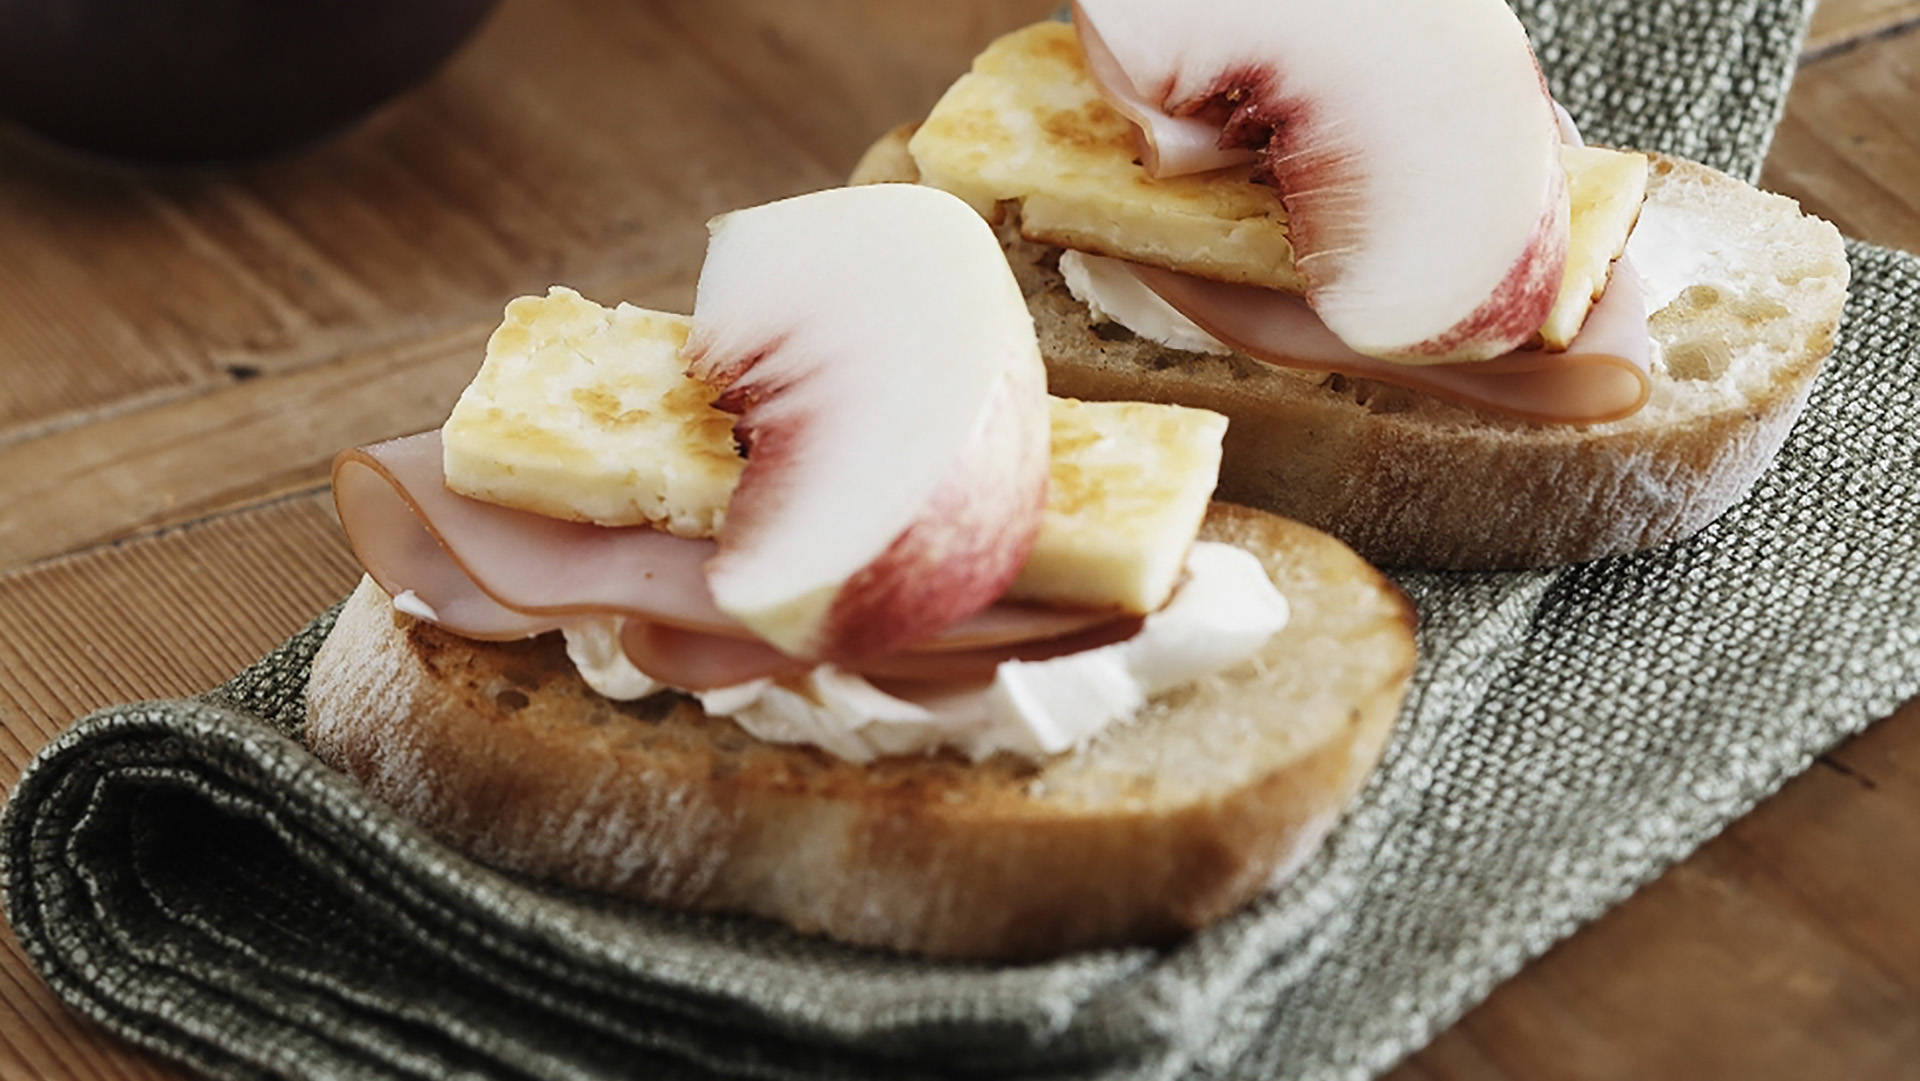 peach-and-ham-crispbreads